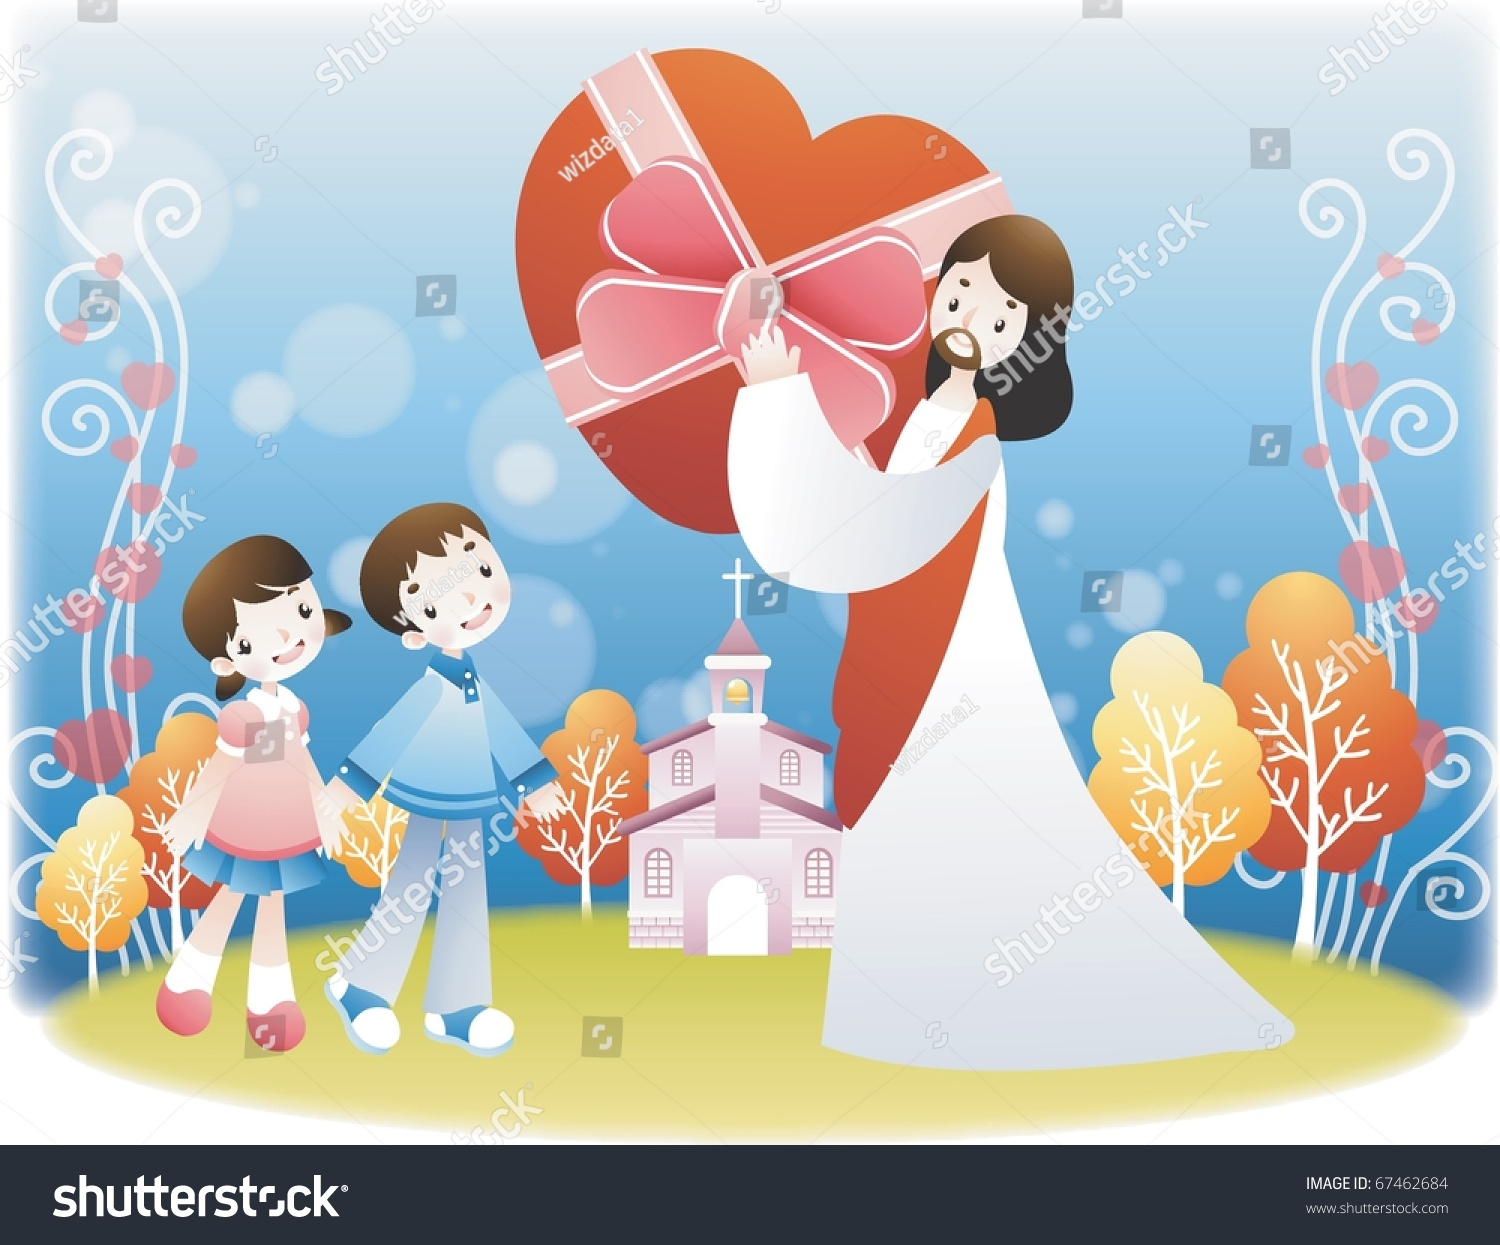 jesus christ children stock vector 67462684 shutterstock